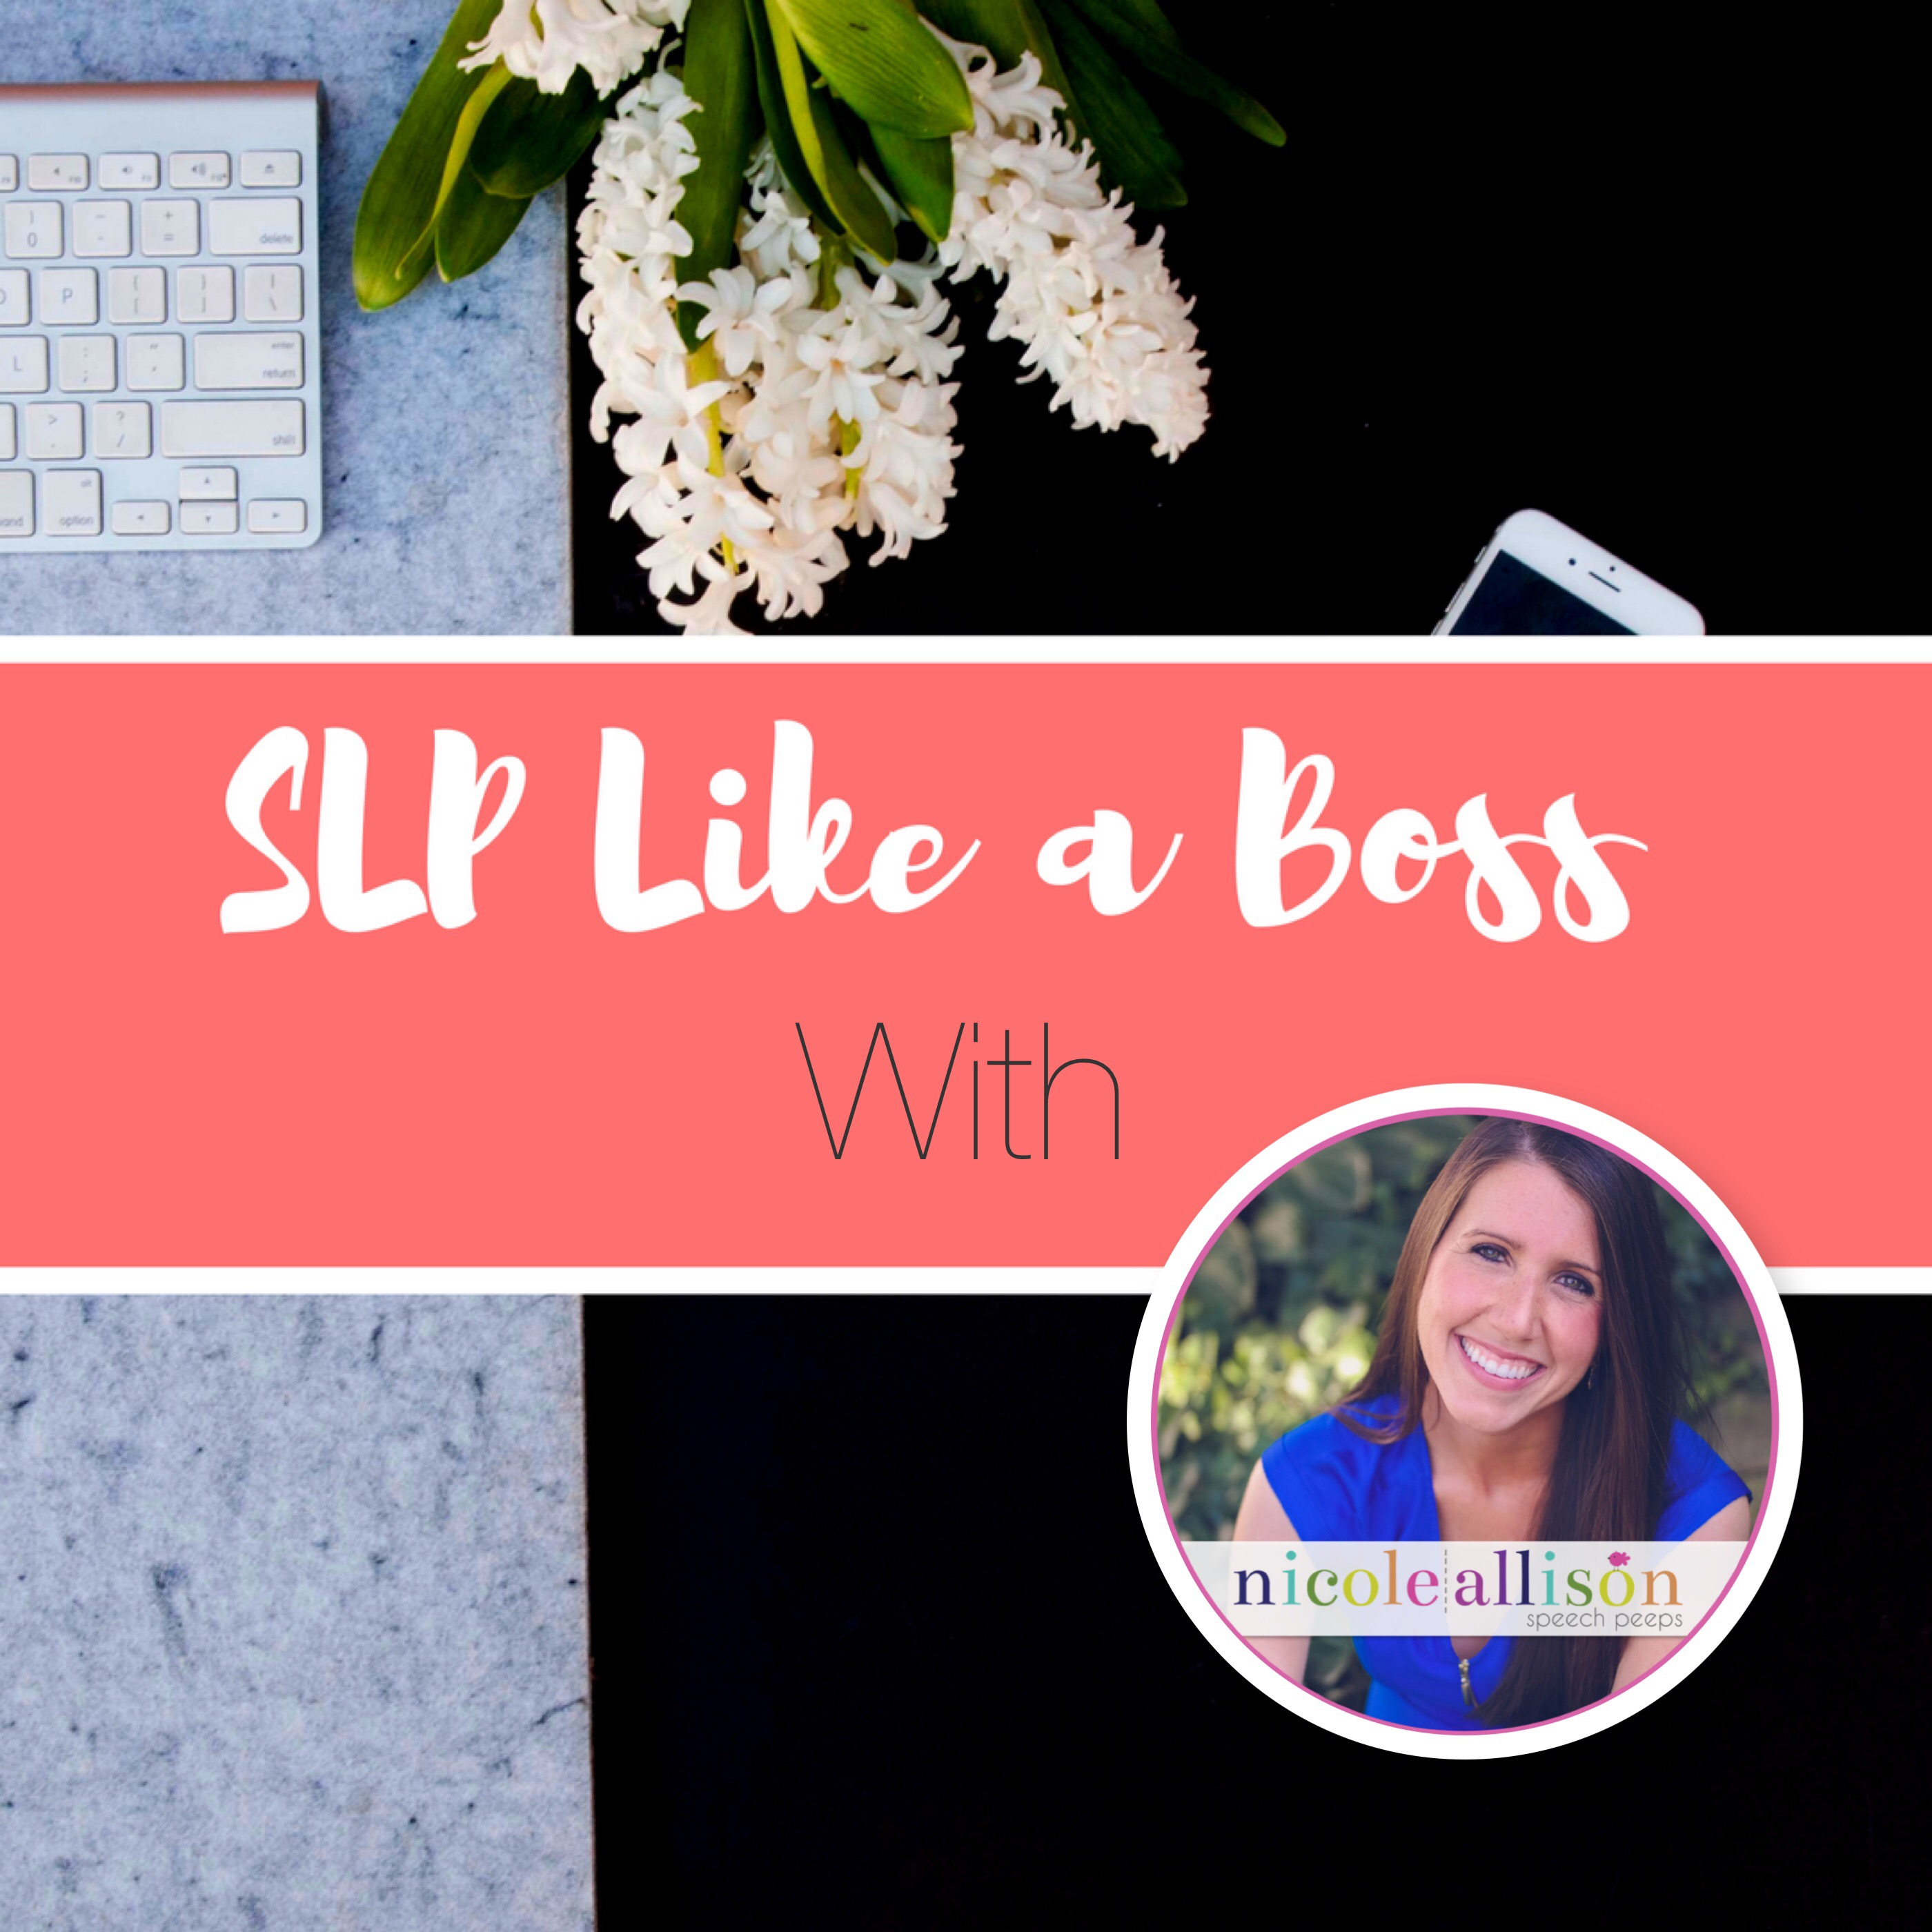 SLP Like a Boss with Nicole Allison